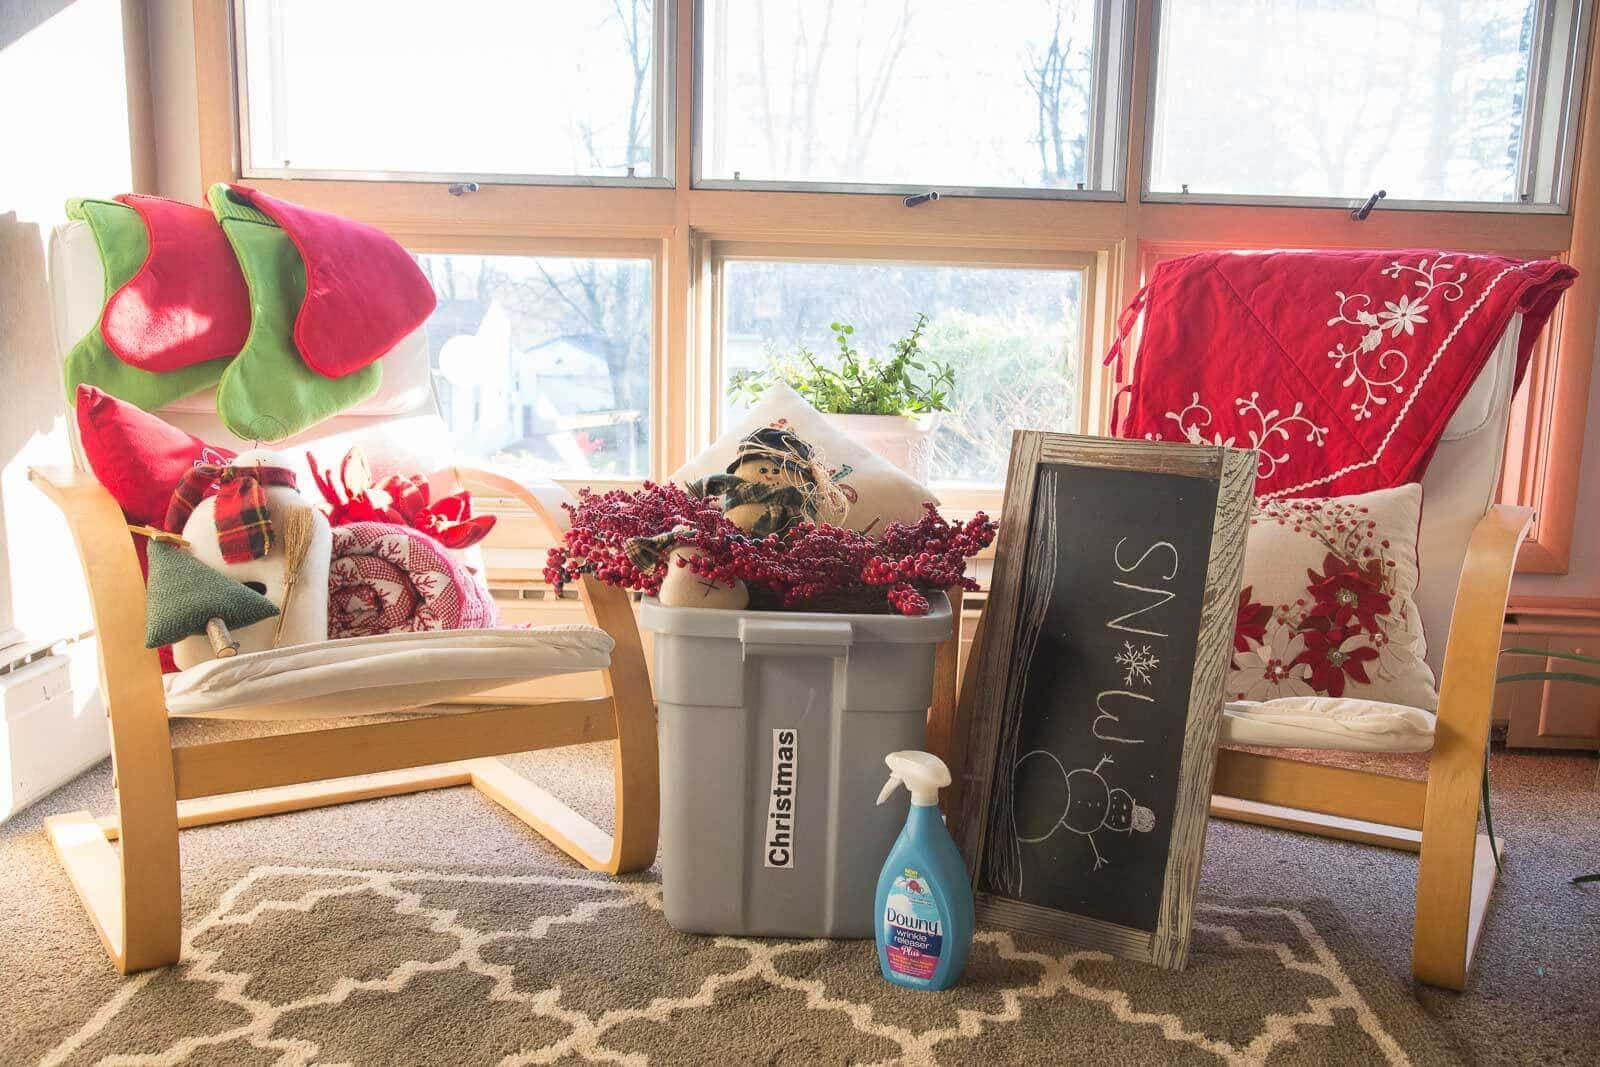 Declutter and redecorate your house